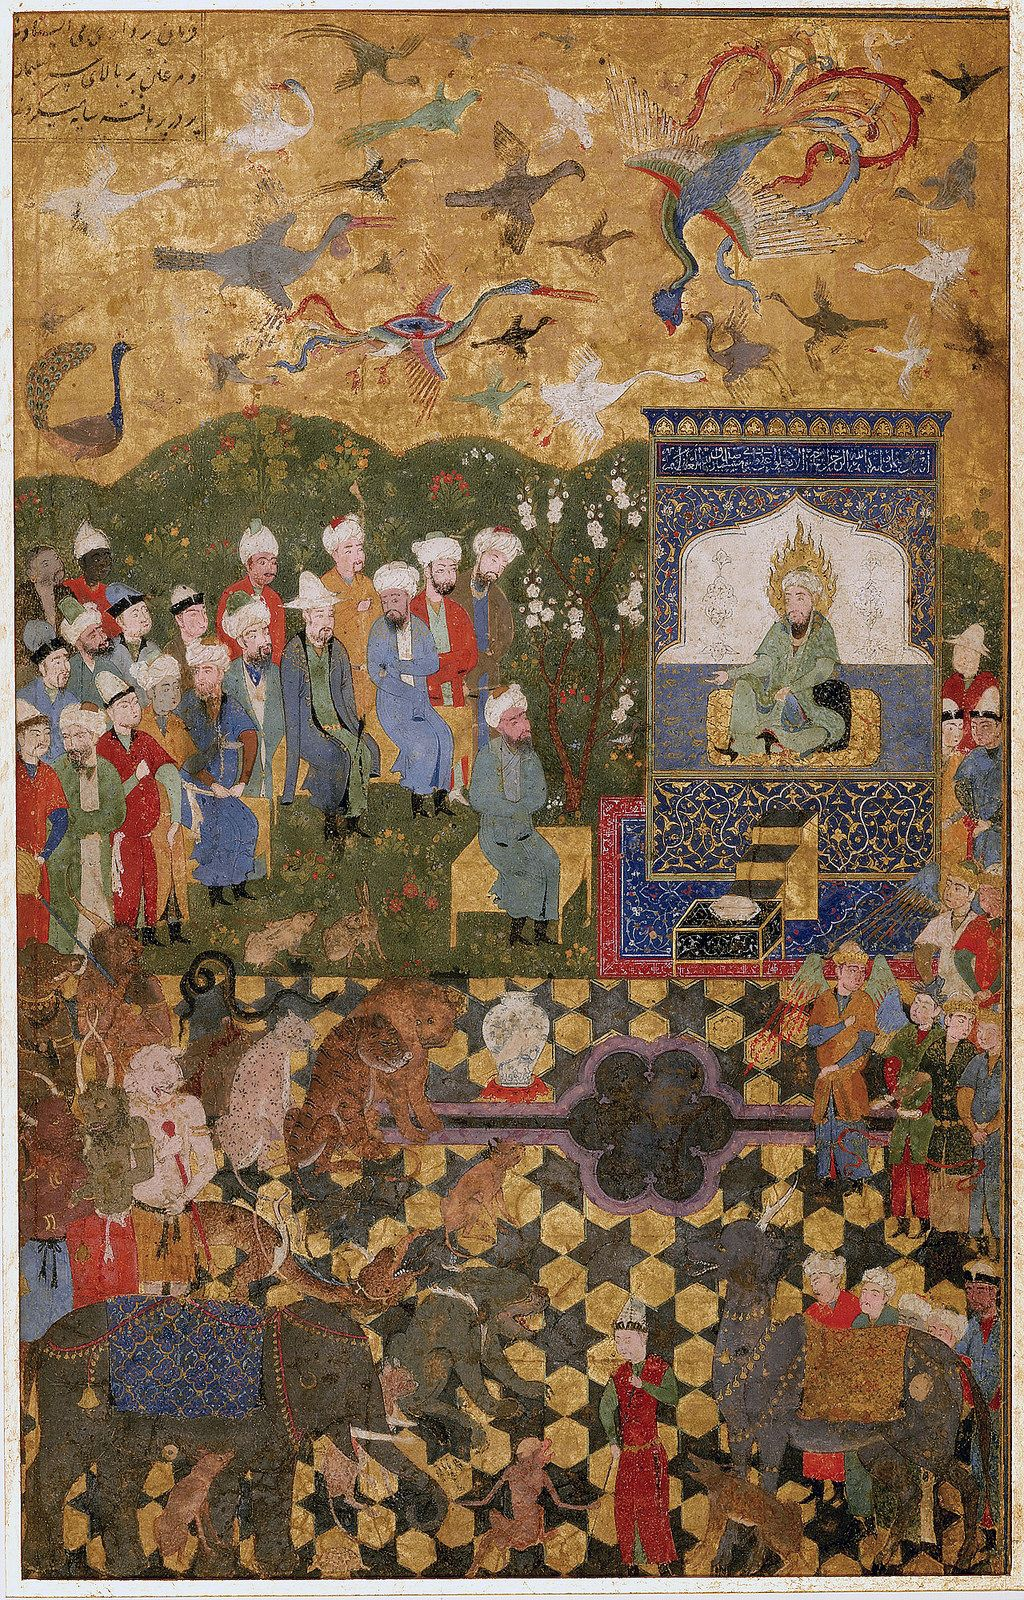 Caligrafia Arabe Arte Suleyman And His Court Miniatures Perses Pinterest